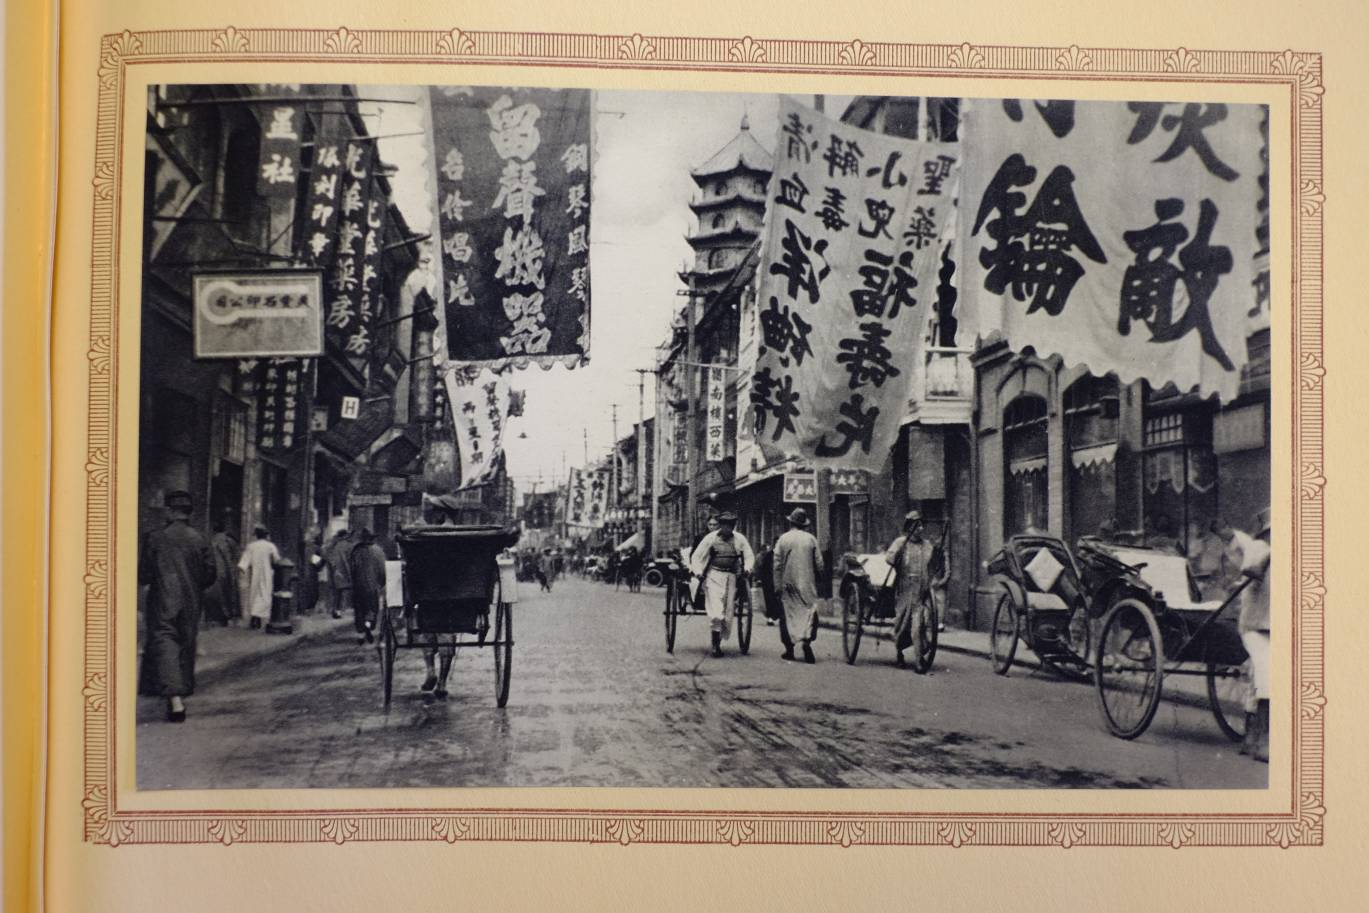 Lot 27 - Green (Owen Mortimer, Introduction). Shanghai of To-Day: A Souvenir Album of Thirty-Eight Van Dyke